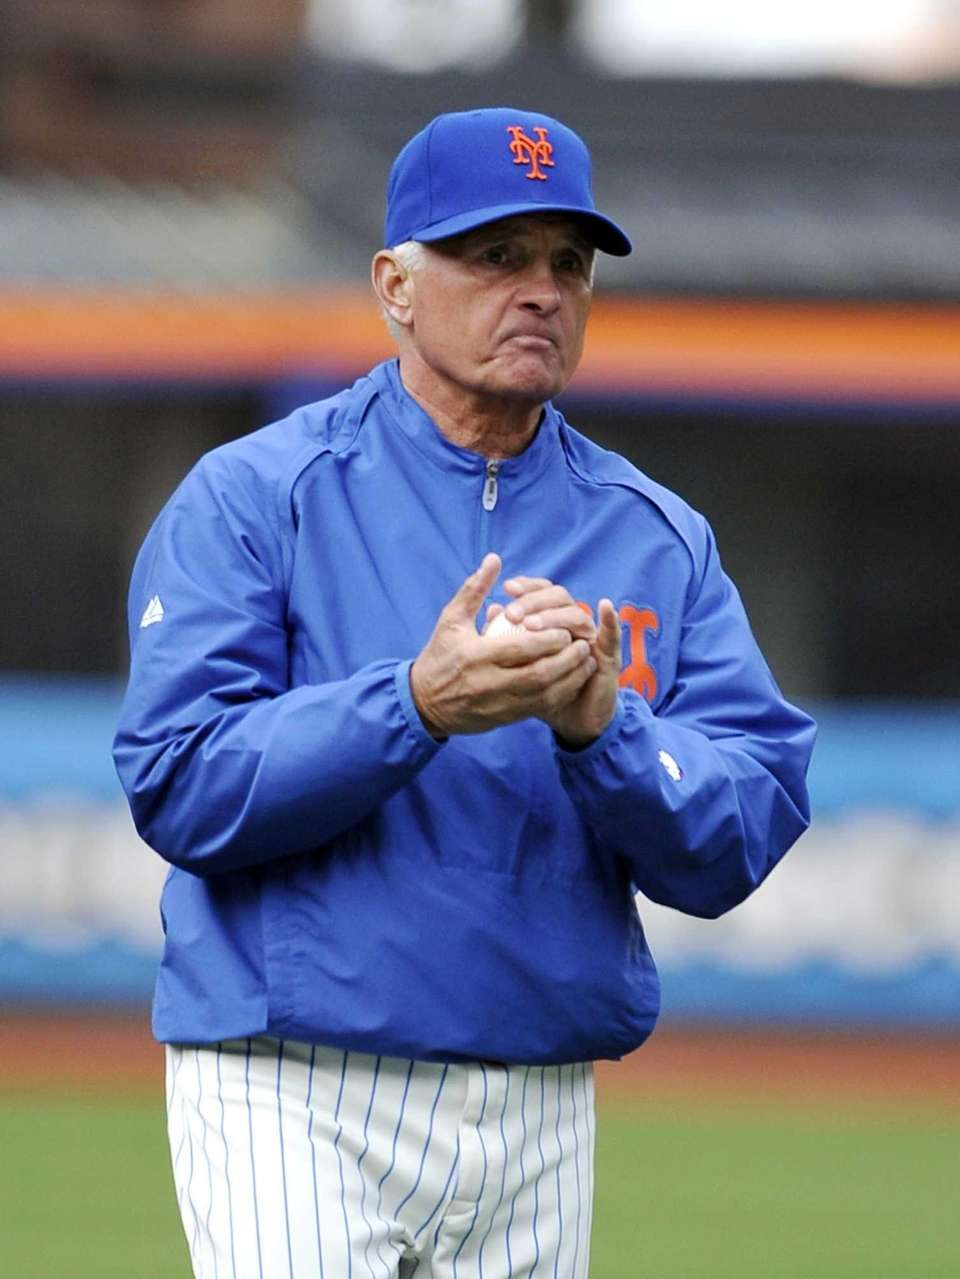 Terry Collins watches batting practice before a game